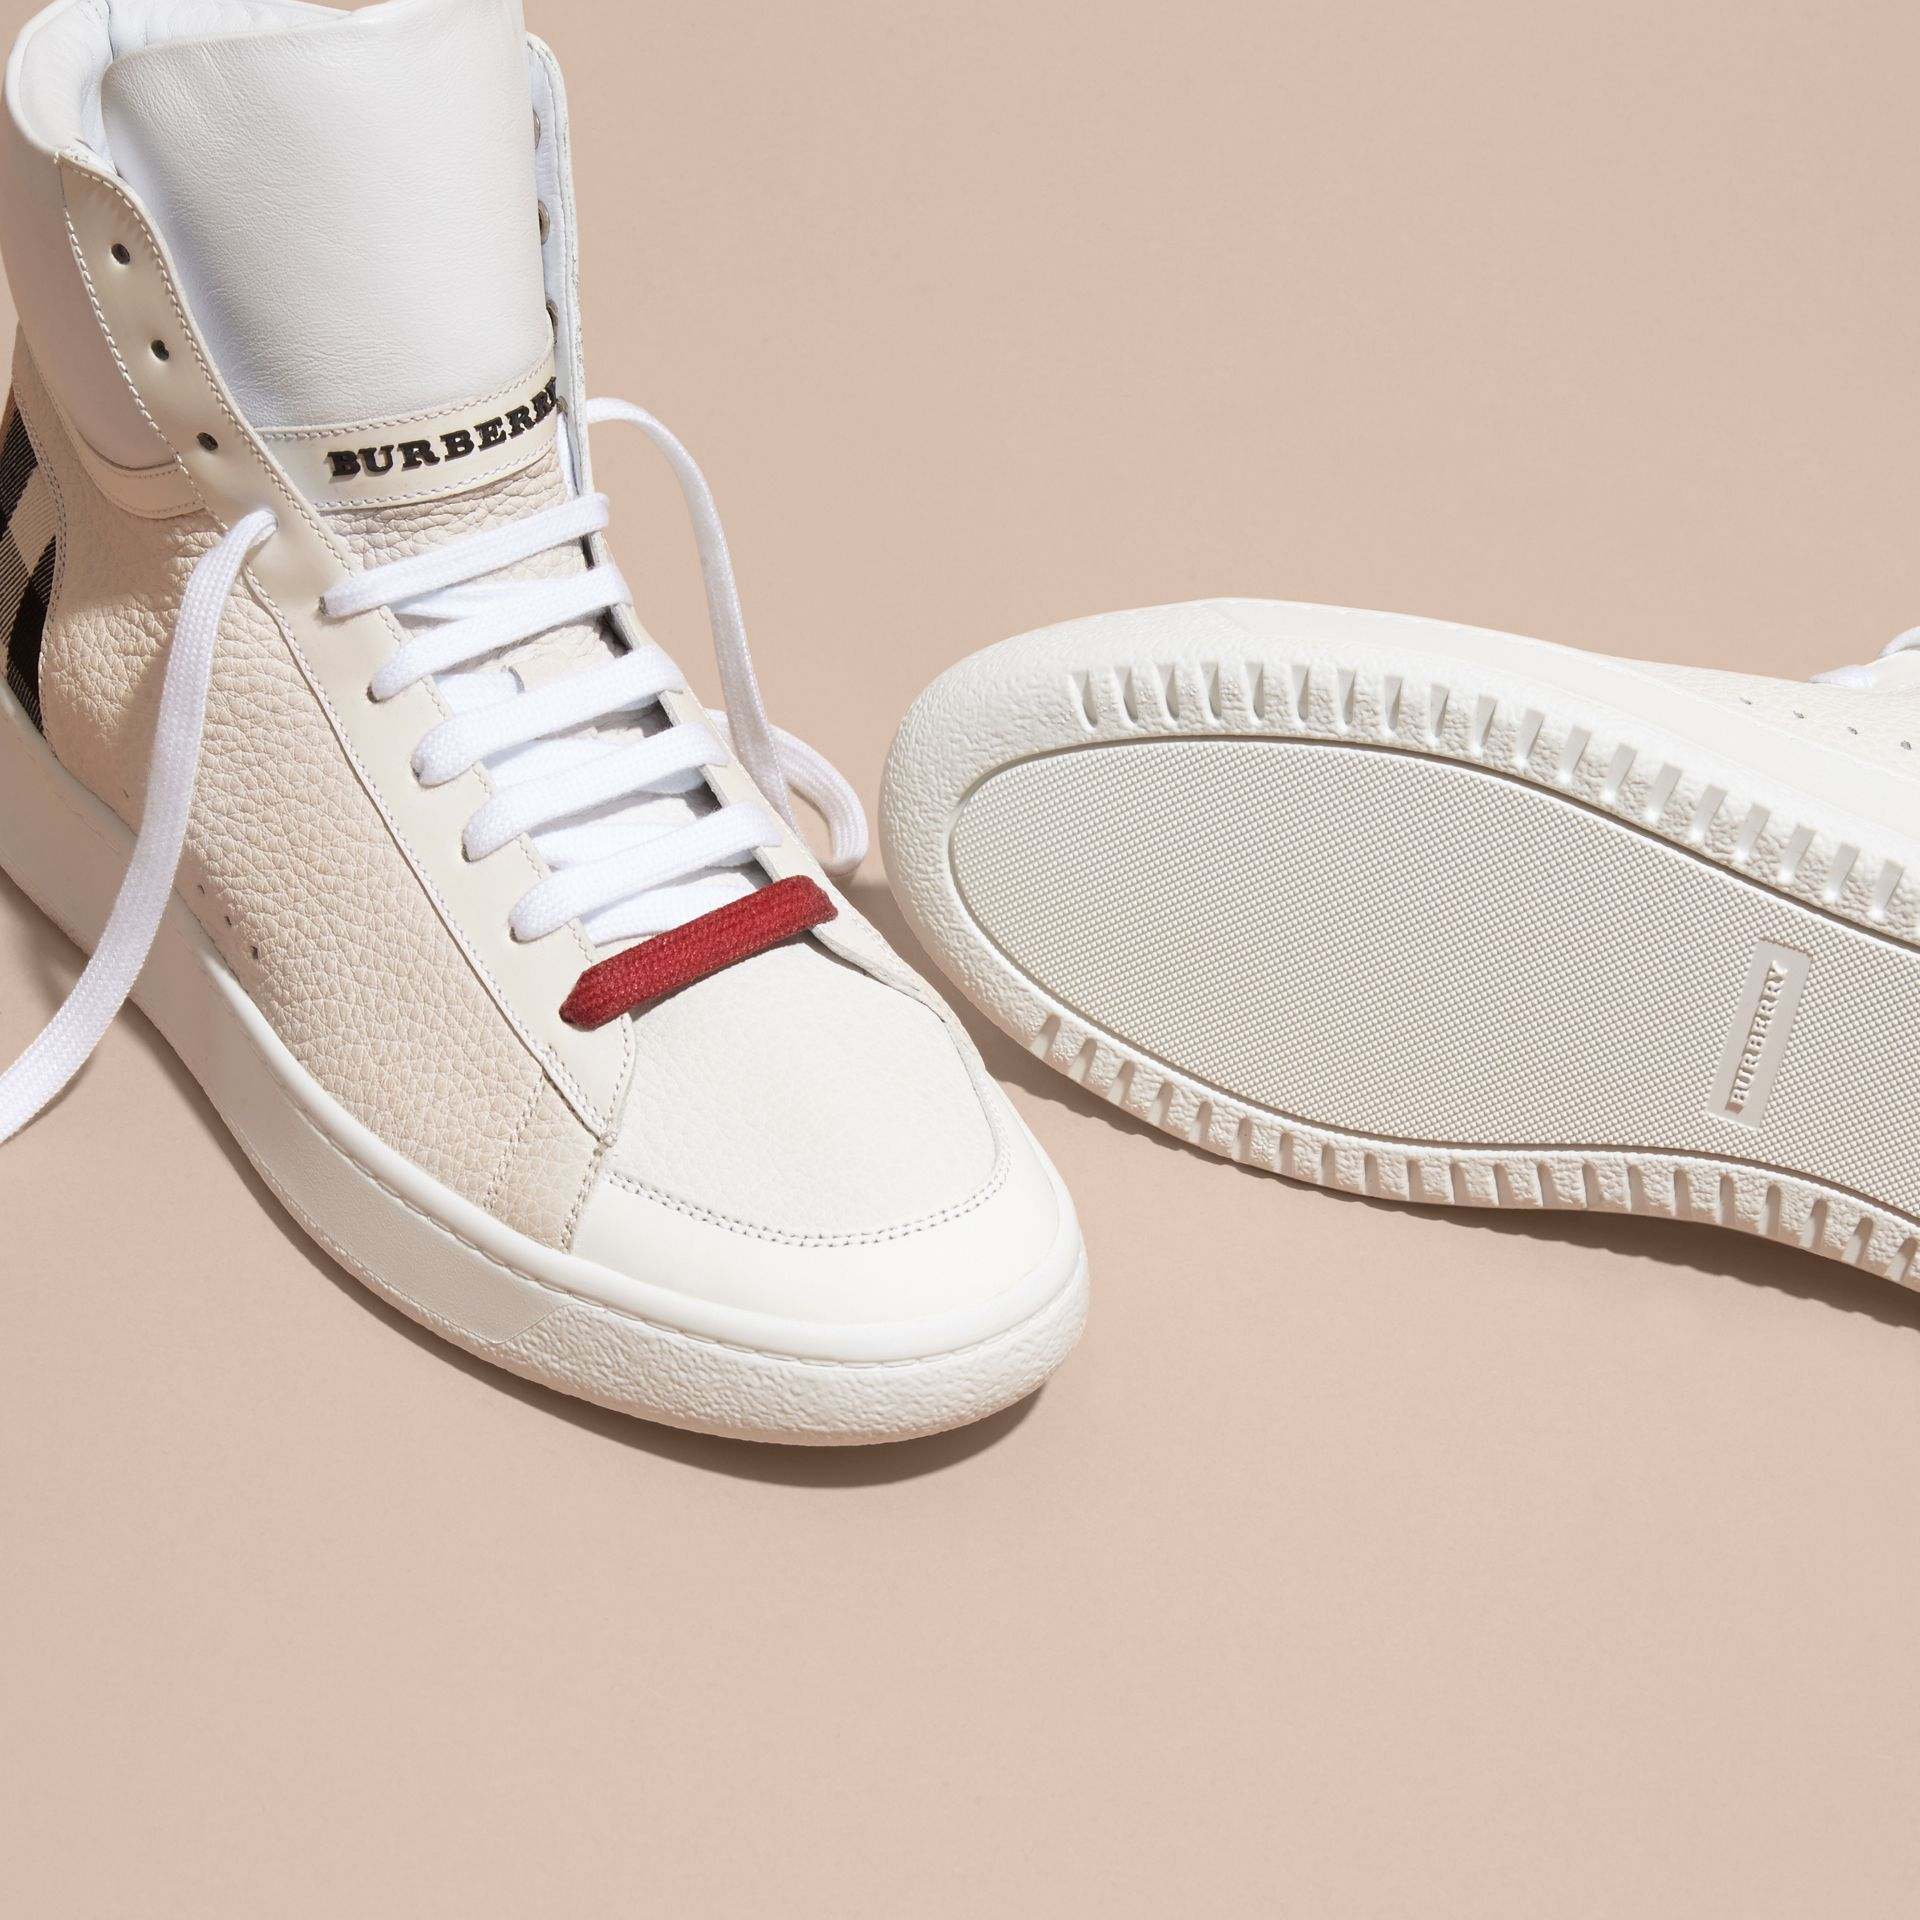 House check/optic white Check Detail Leather High-top Trainers House Check/optic White - gallery image 5